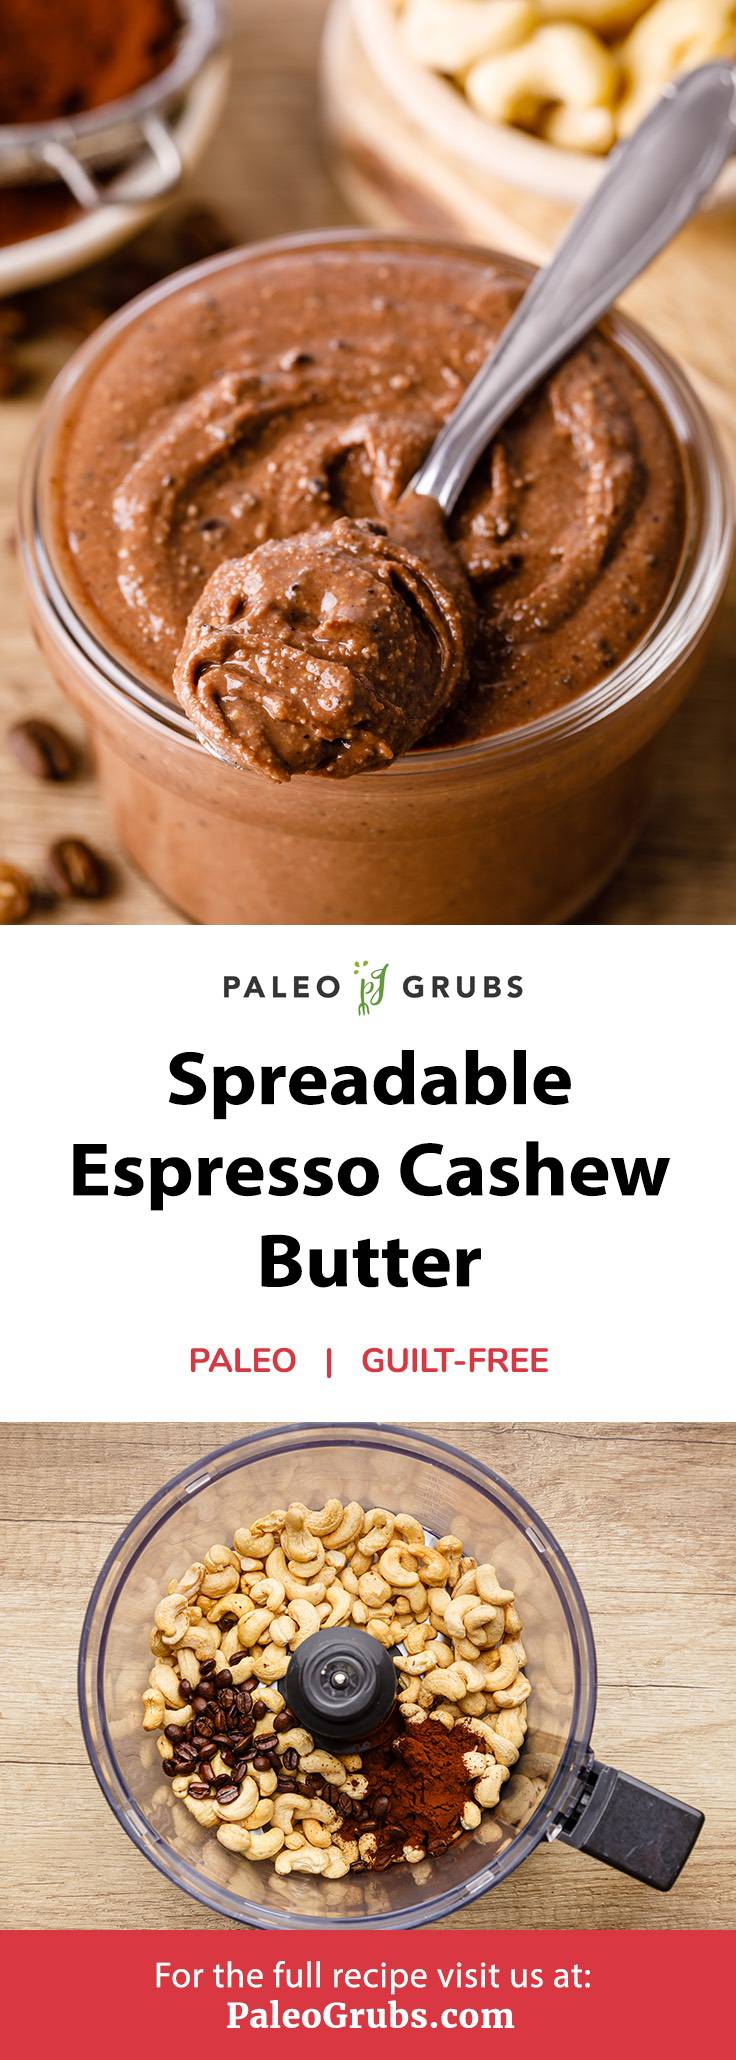 Home.fit espresso-cashew-butter Spreadable Espresso Cashew Butter (Good on everything!)